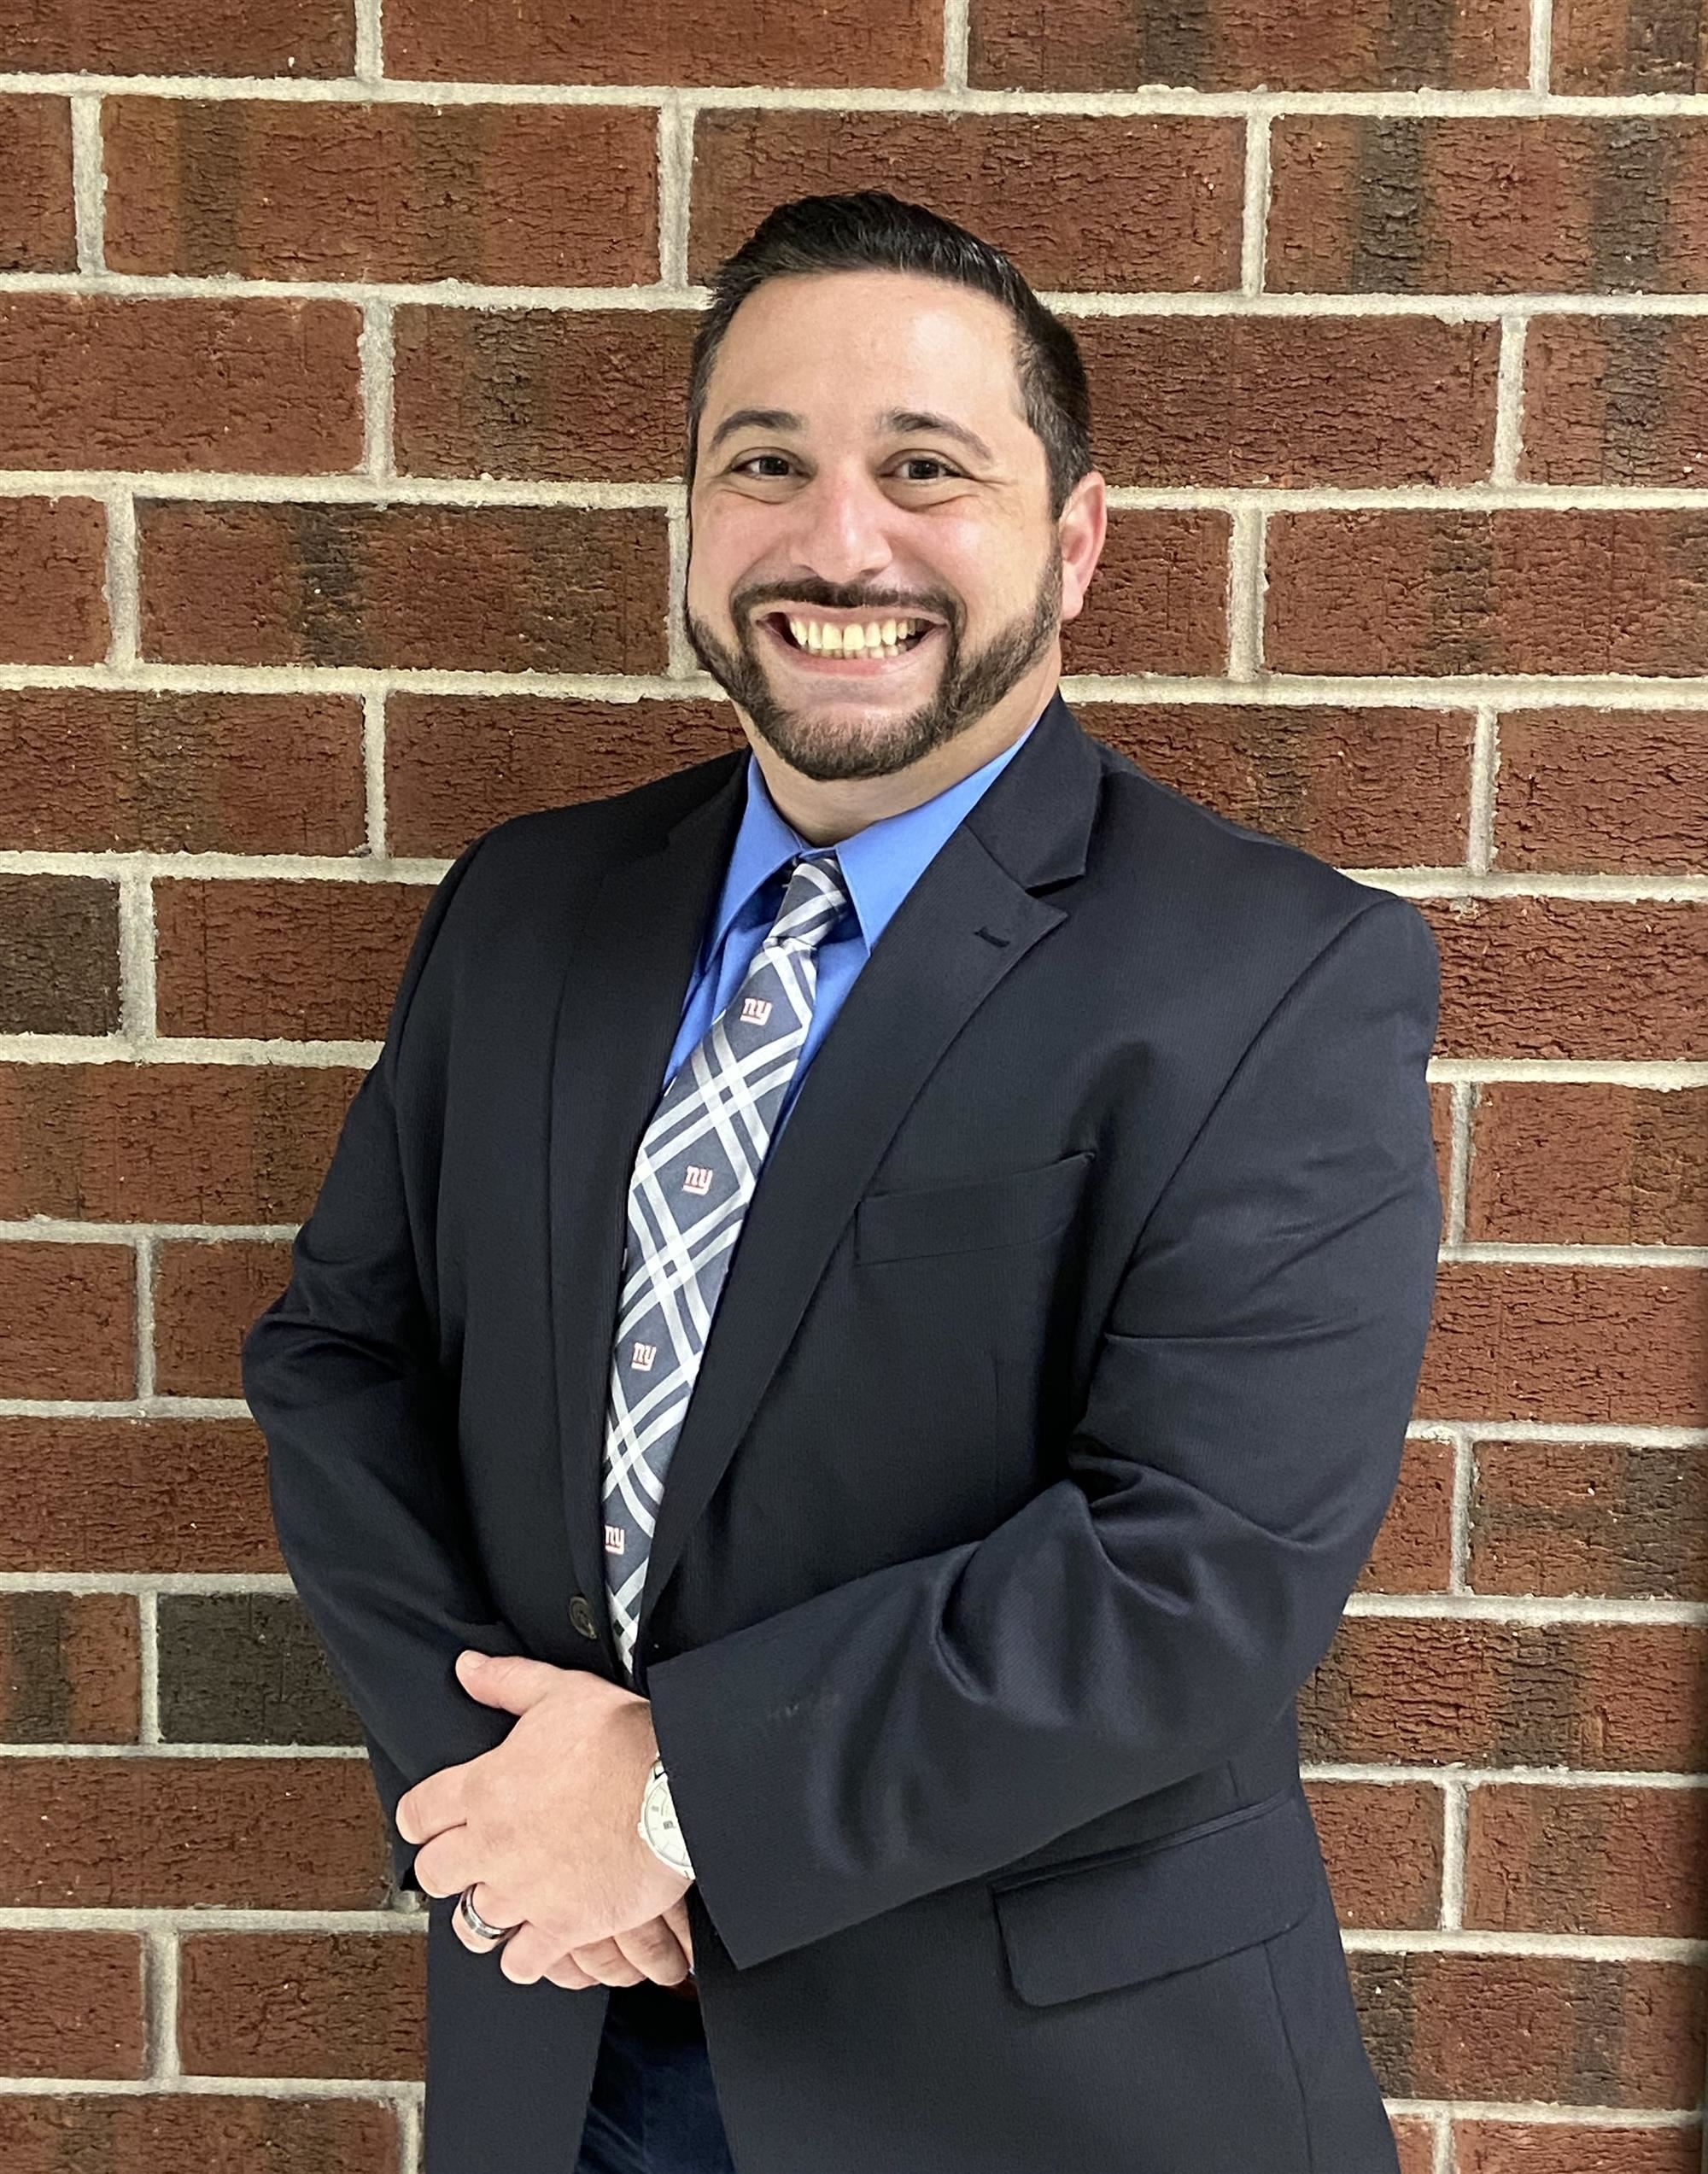 Andrew Aversa, Assistant Principal